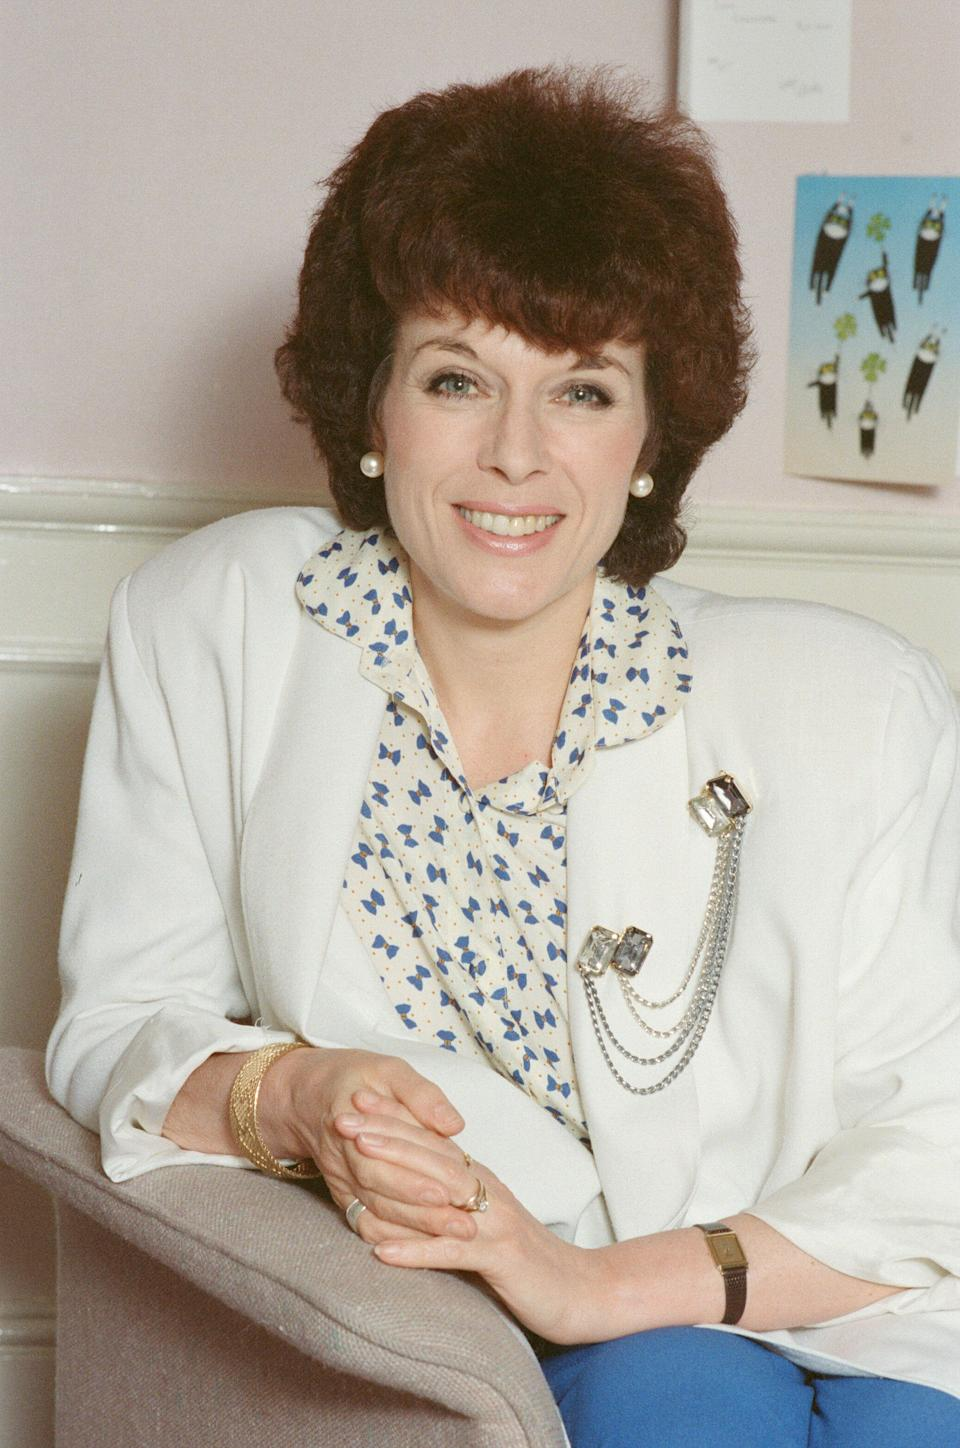 <strong>Jill Gascoine (1937 - 2020)<br /><br /></strong>The TV actress was best remembered forher role as Detective Inspector Maggie Forbes in the hit 80s series The Gentle Touch. She died four years after being moved into a specialist care home for people who have advanced Alzheimer's disease.